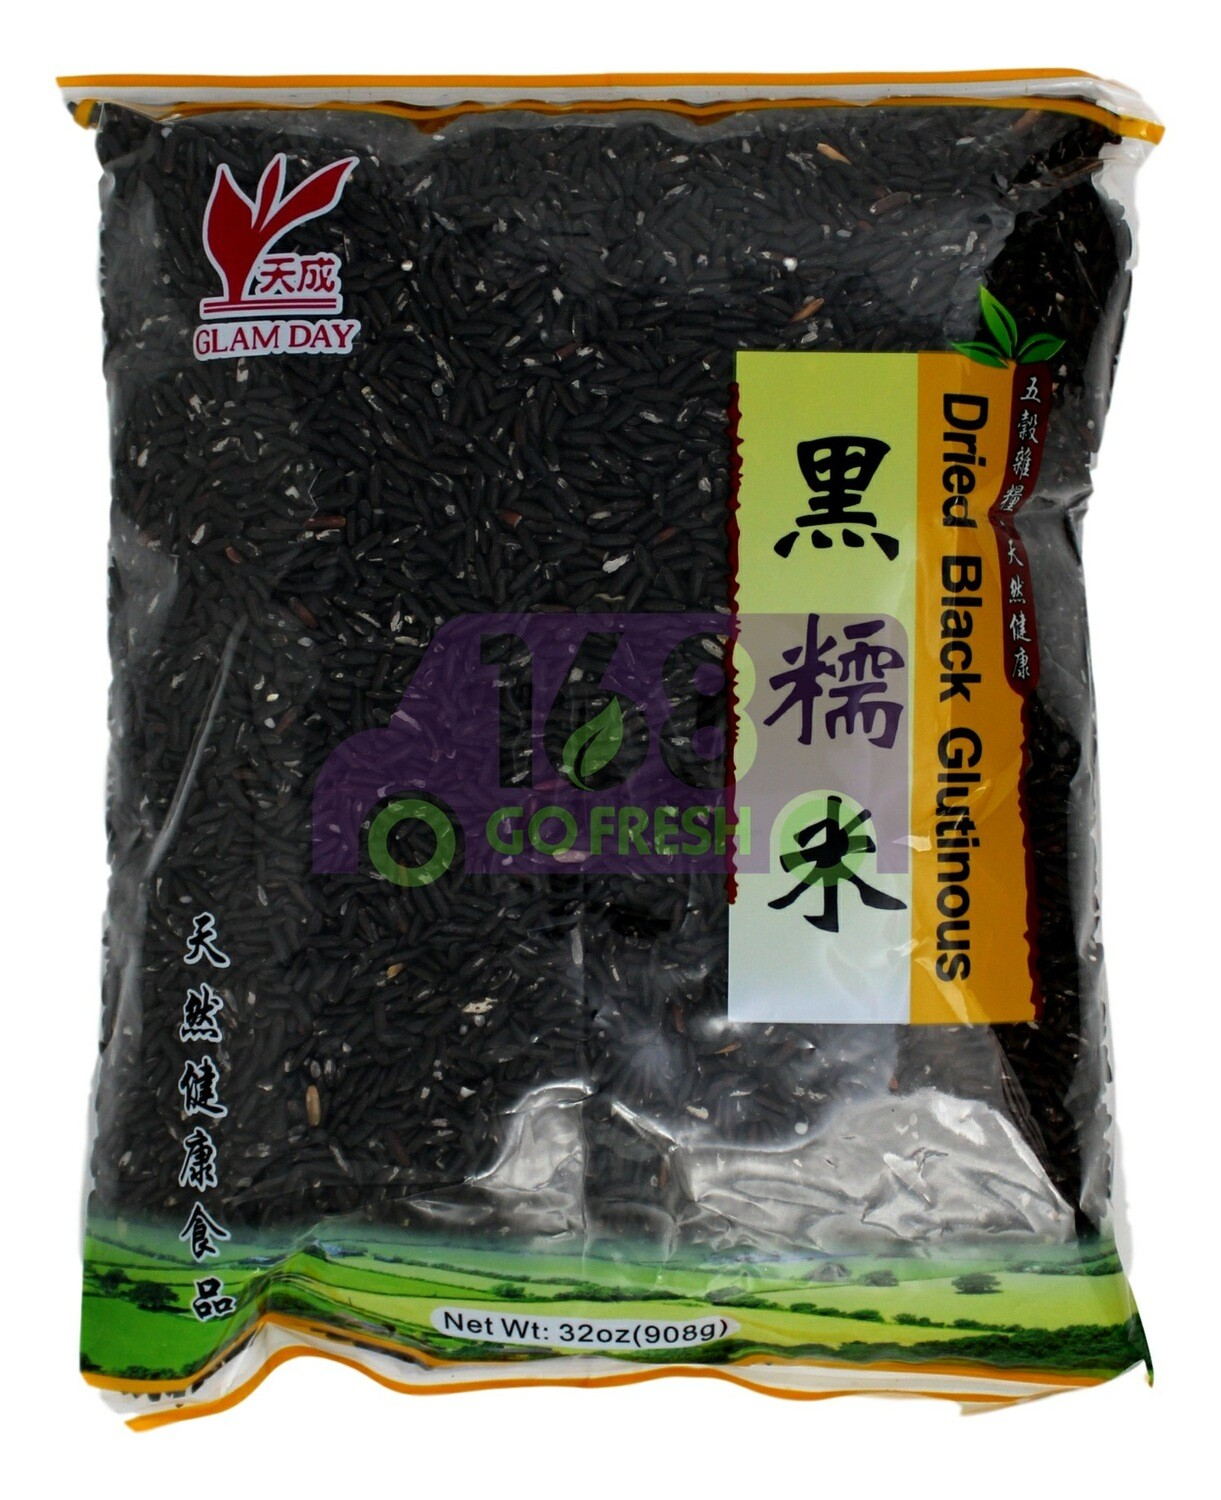 GLAM DAY DRIED BLACK GLUTINOUS RICE 东龙  黑糯米(原天成黑糯米)